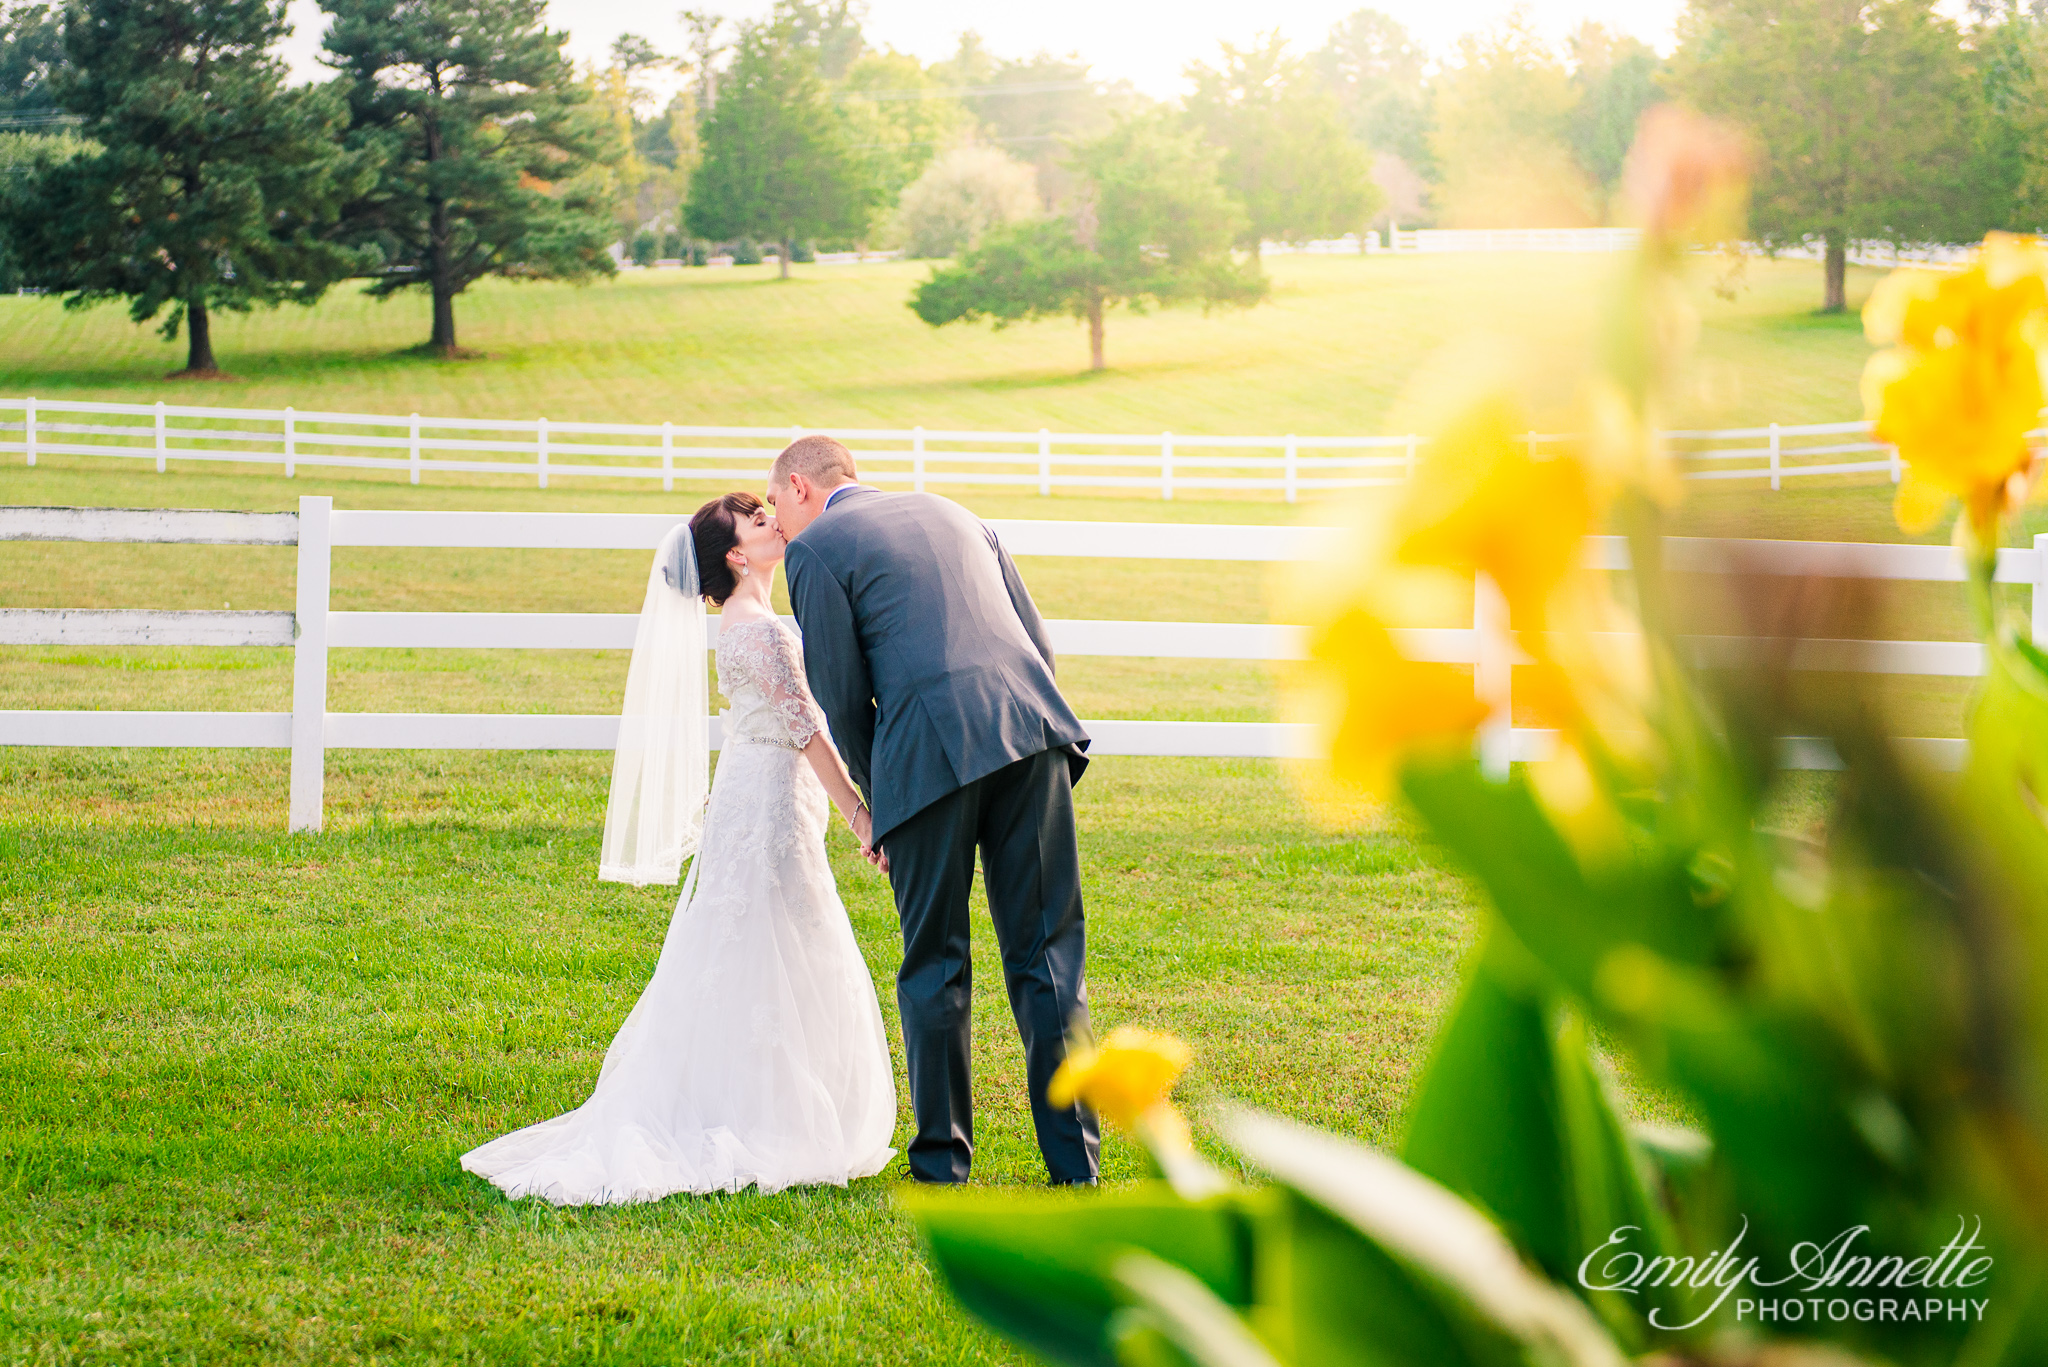 A bride and groom kiss at golden hour during their country wedding at Amber Grove near Richmond, Virginia